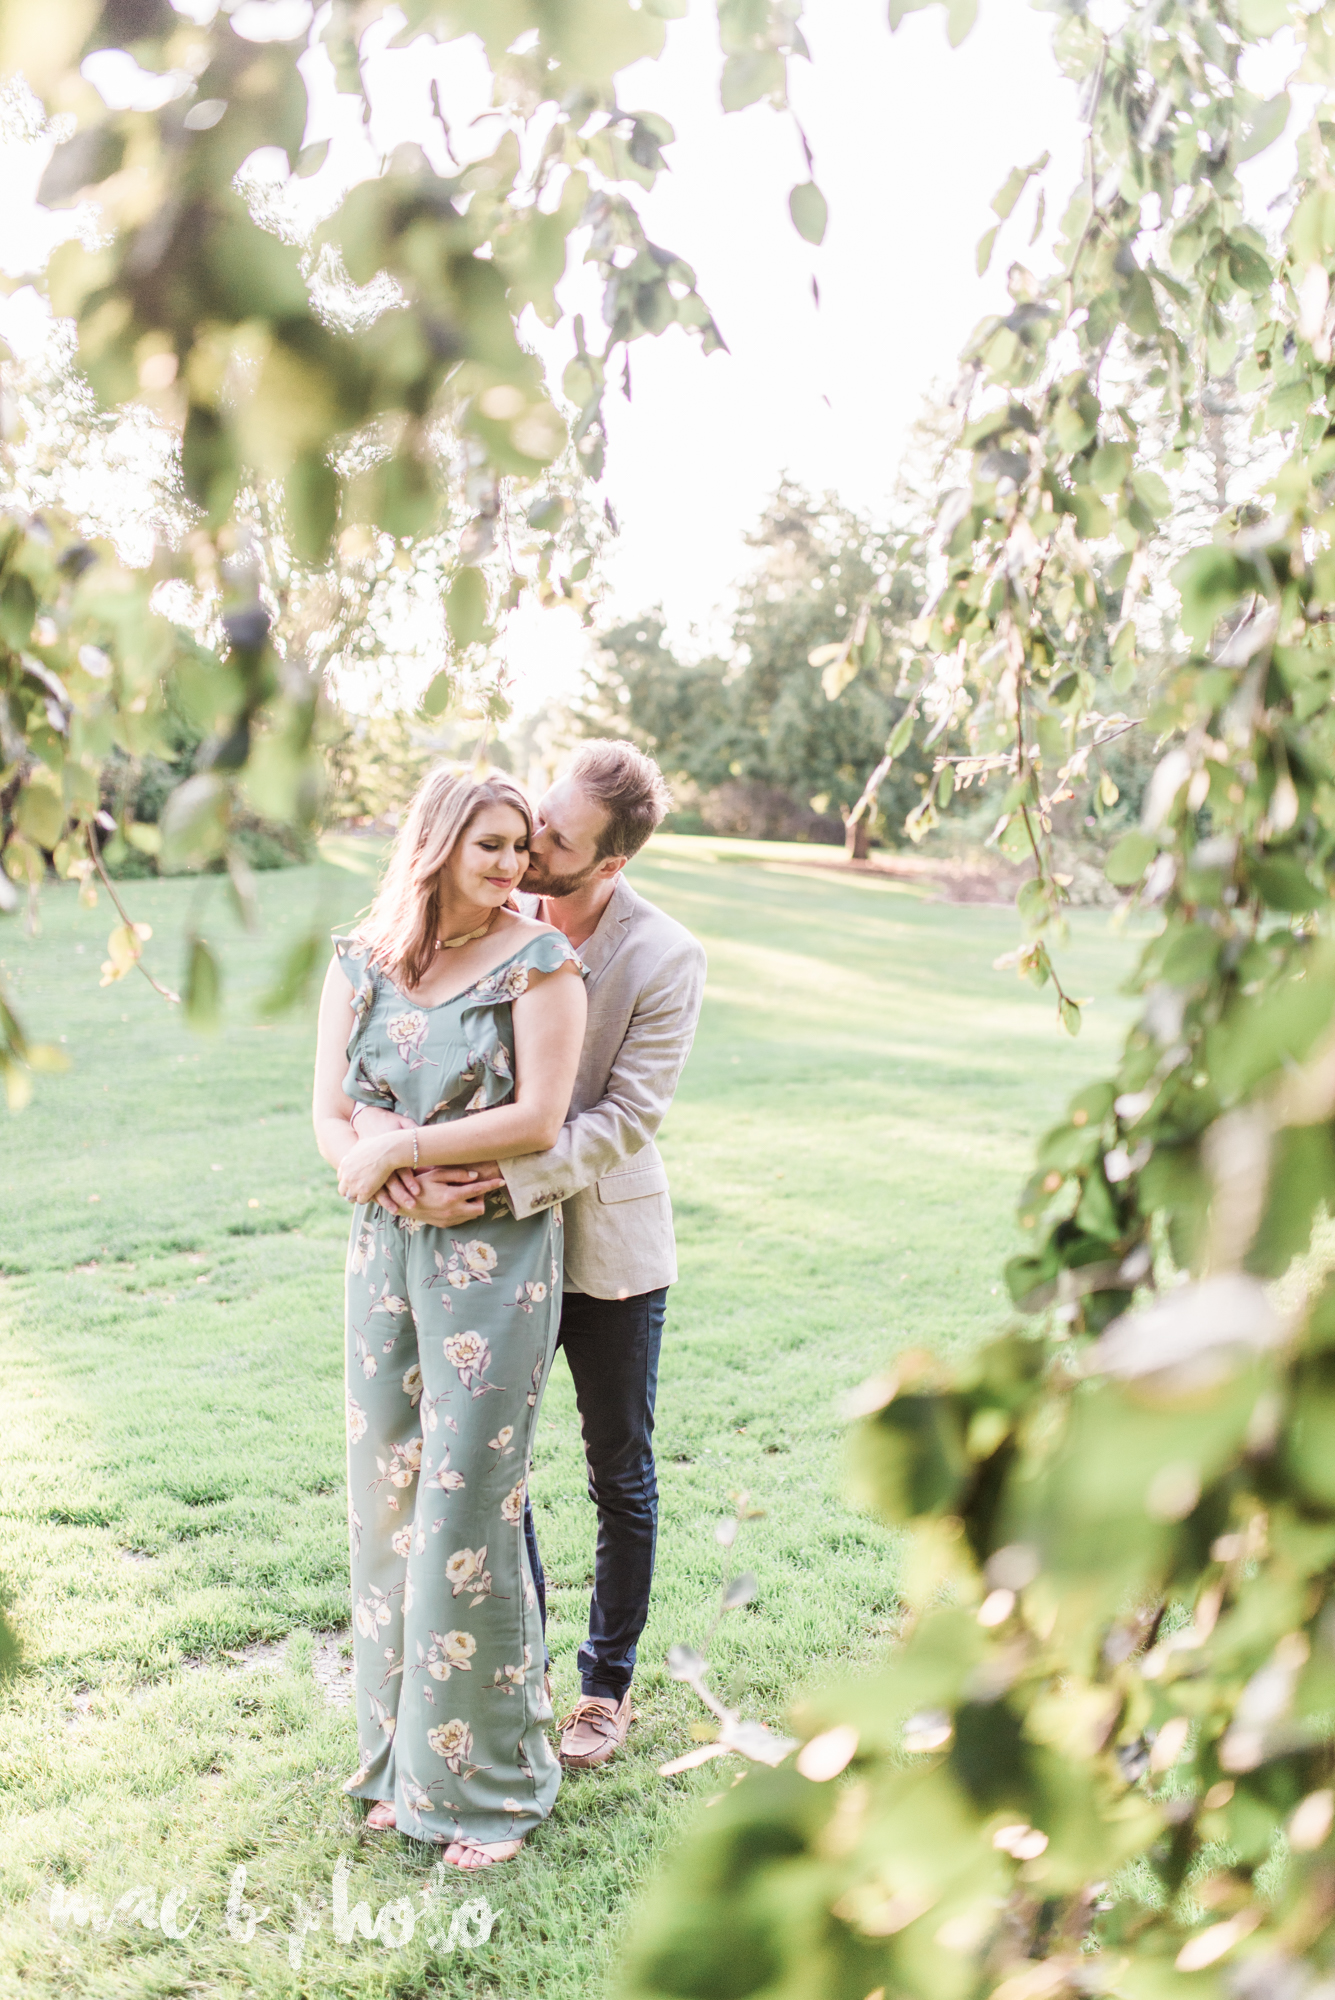 lauren and steve's summer engagement session at the rose gardens and lanterman's mill in mill creek park in youngstown ohio photographed by youngstown wedding photographer mae b photo-23.jpg